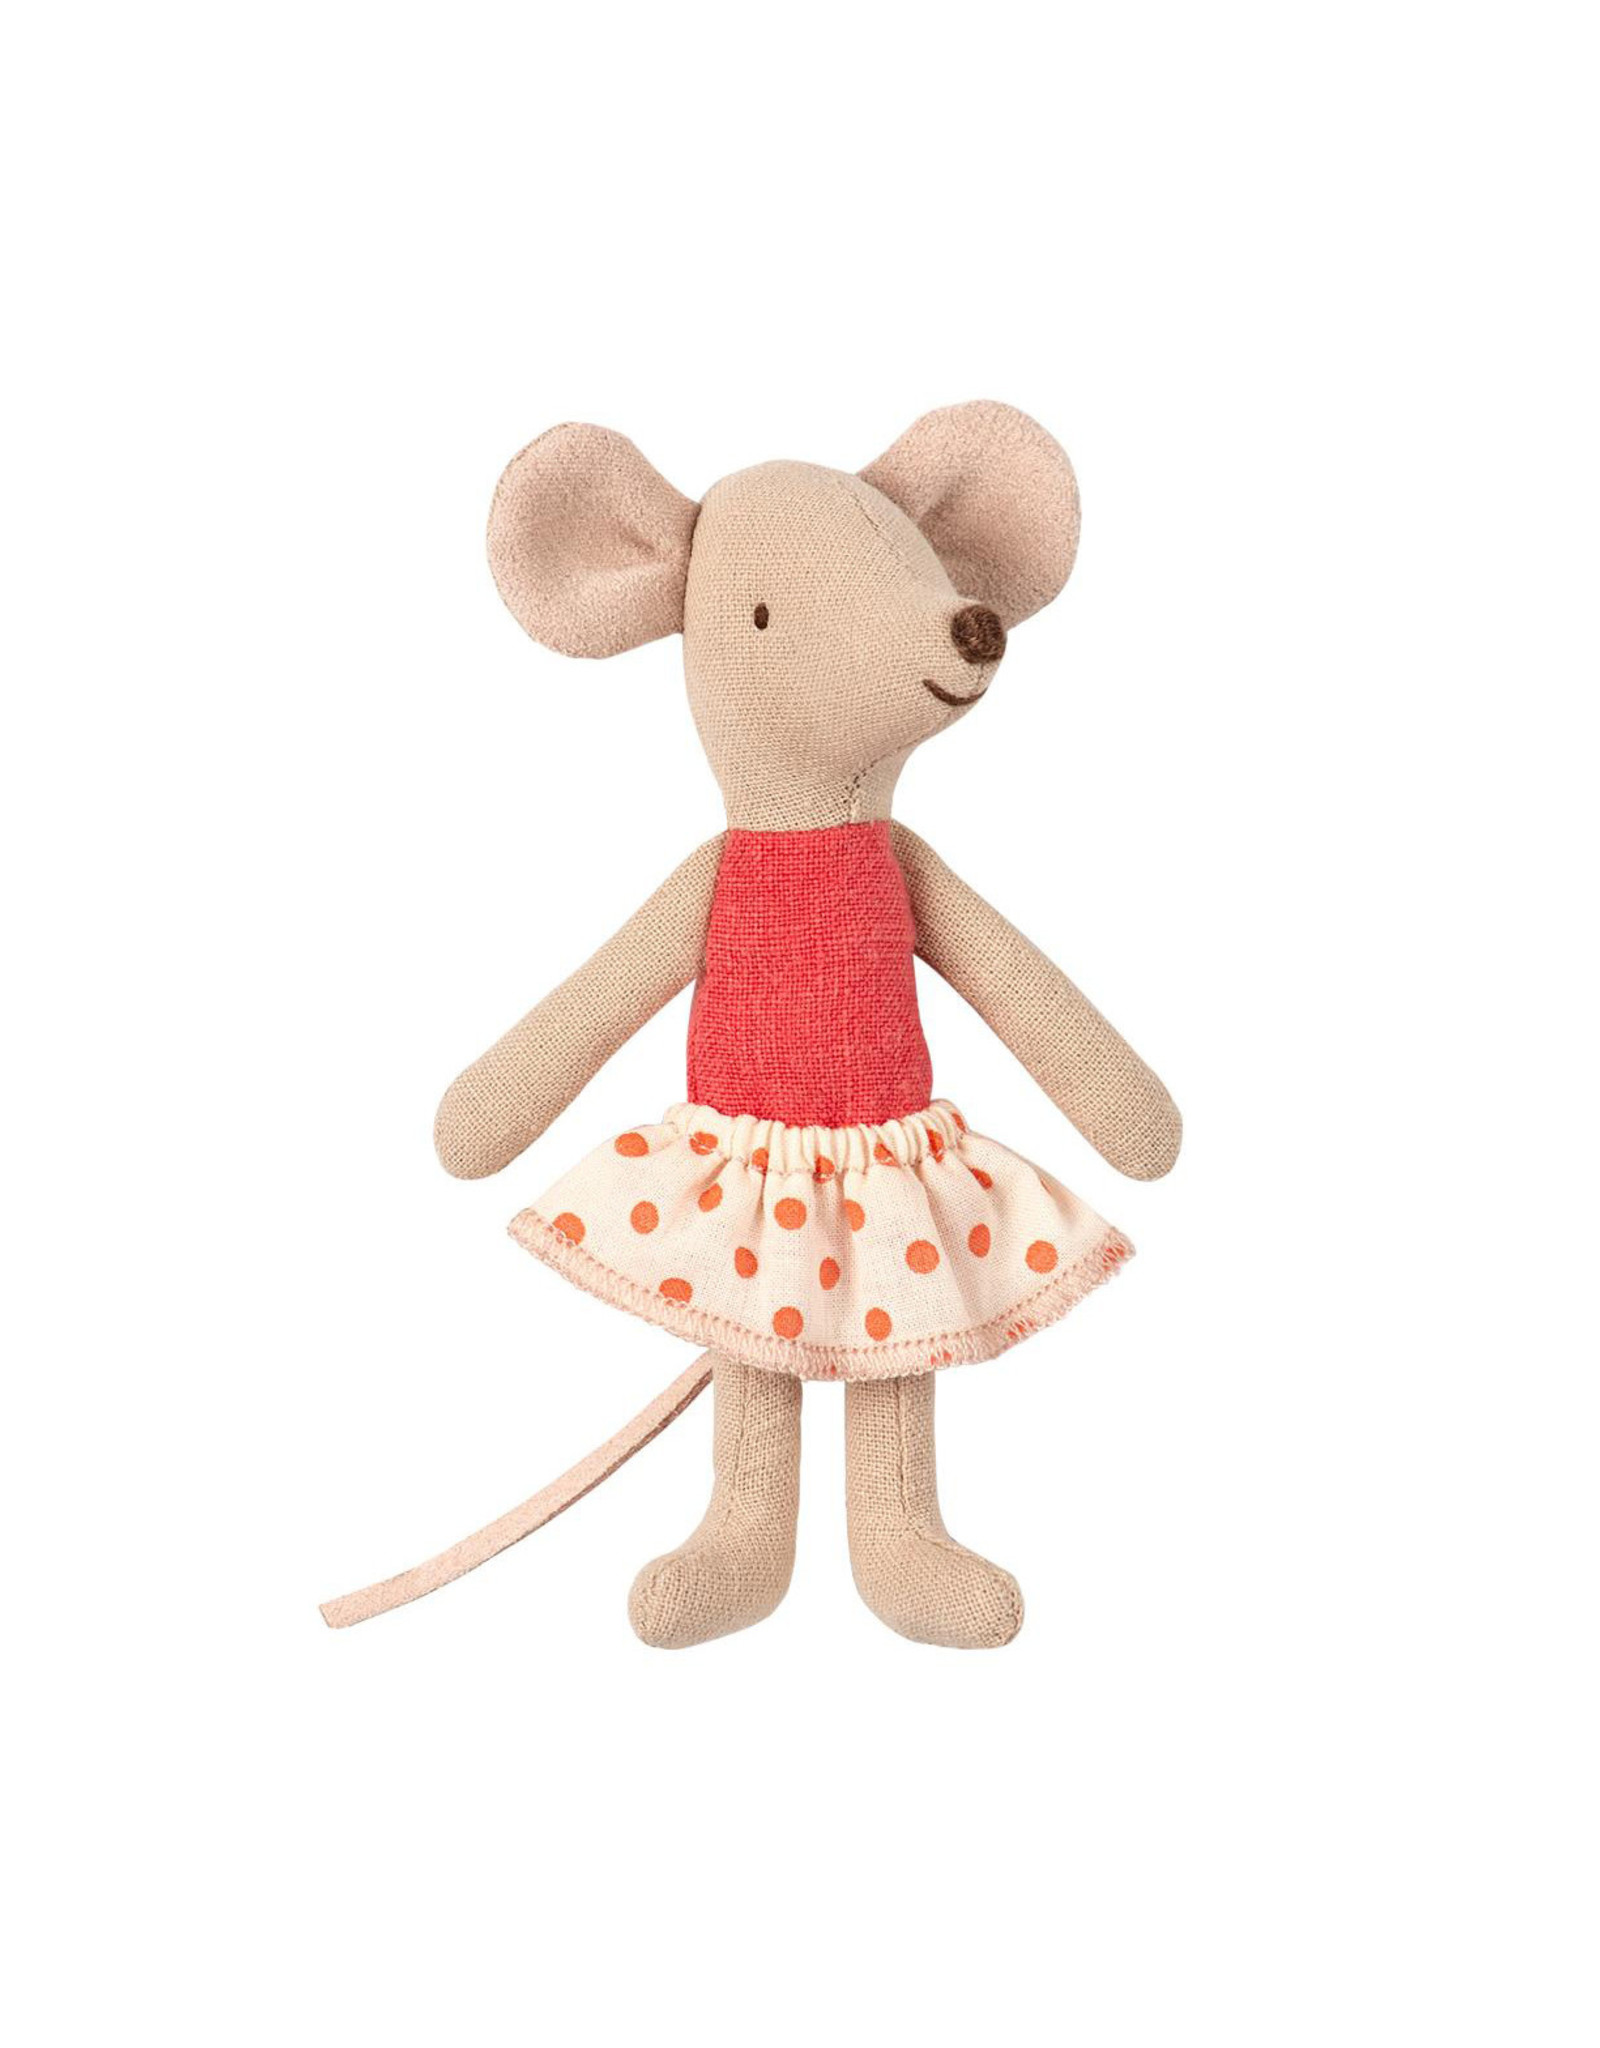 Maileg Little Sister Mouse in Box - Coral Shirt + Polka Dot Skirt